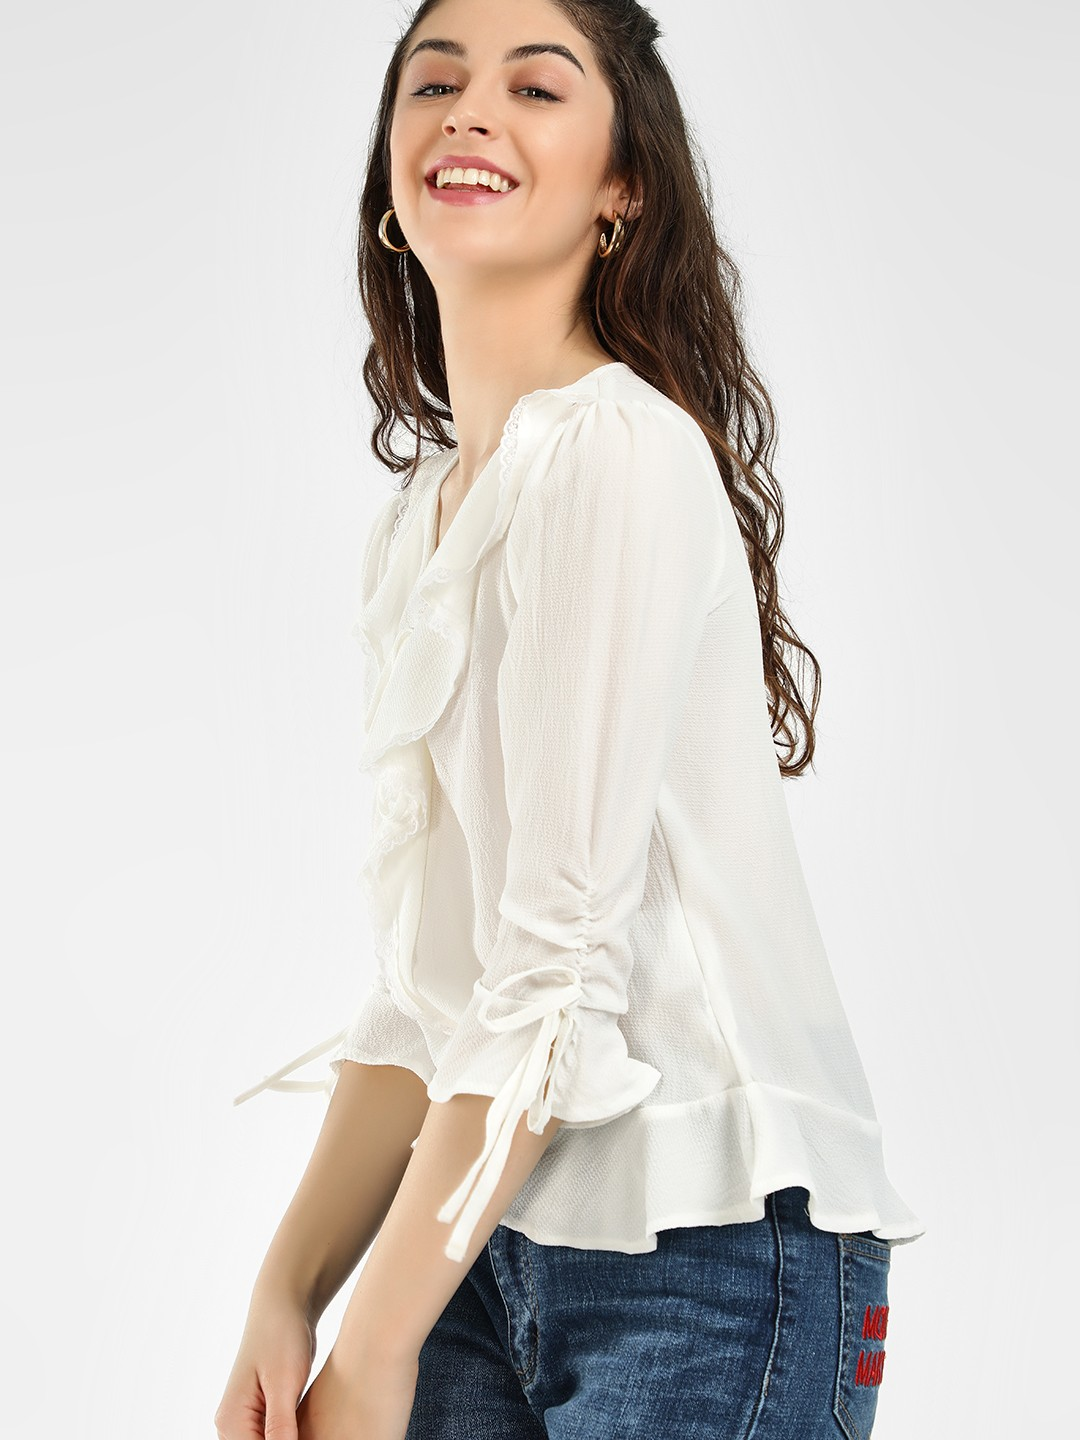 HEY Off White Front Tie-Up Ruffle Sleeve Blouse 1